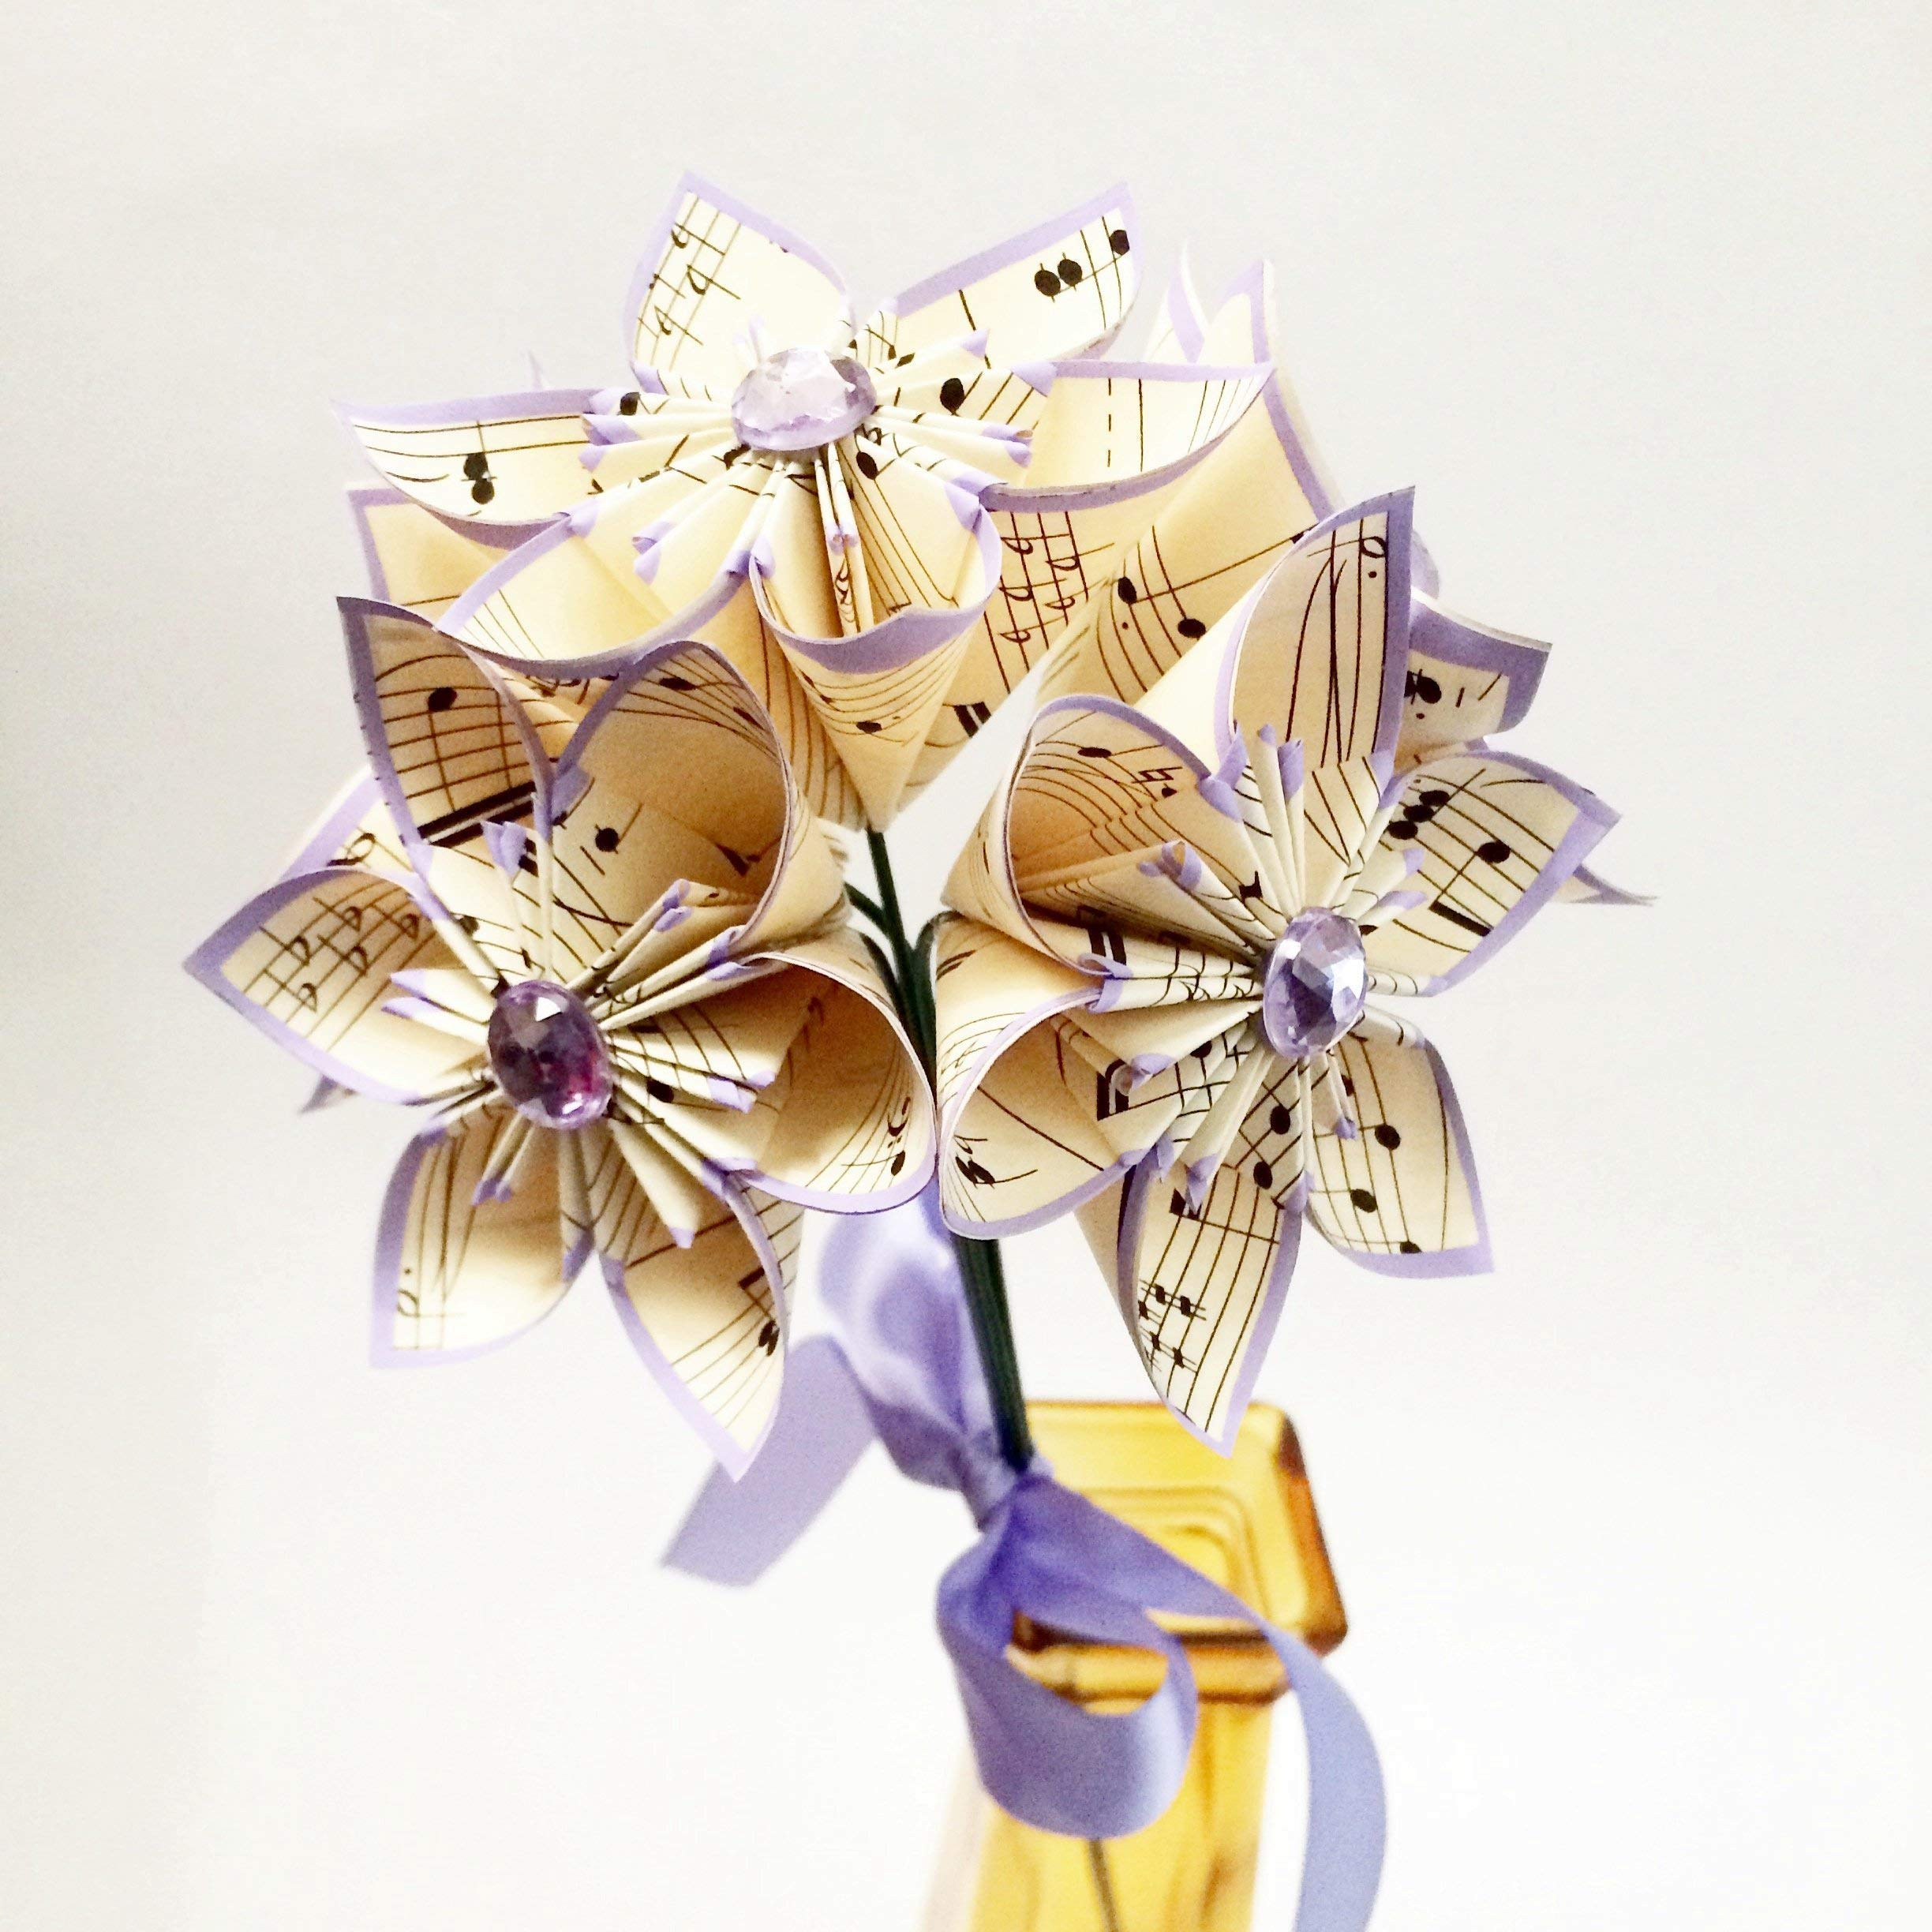 5 Sheet Music Paper Flowers Ready To Ship Handmade Small Lilac Bouquet Anniversary Gift Wedding Decor Small Bridesmaid Bouquet